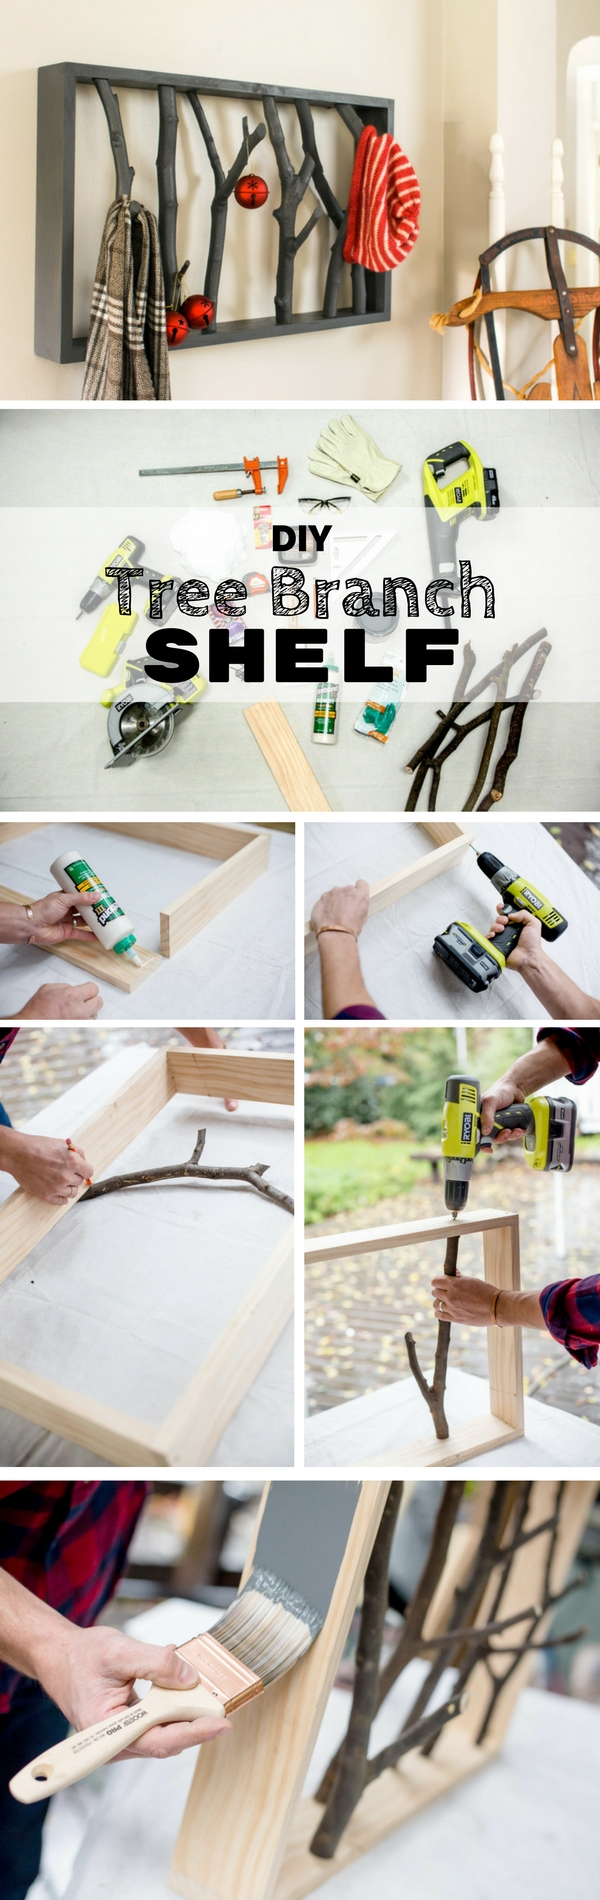 diy shelves build home 1